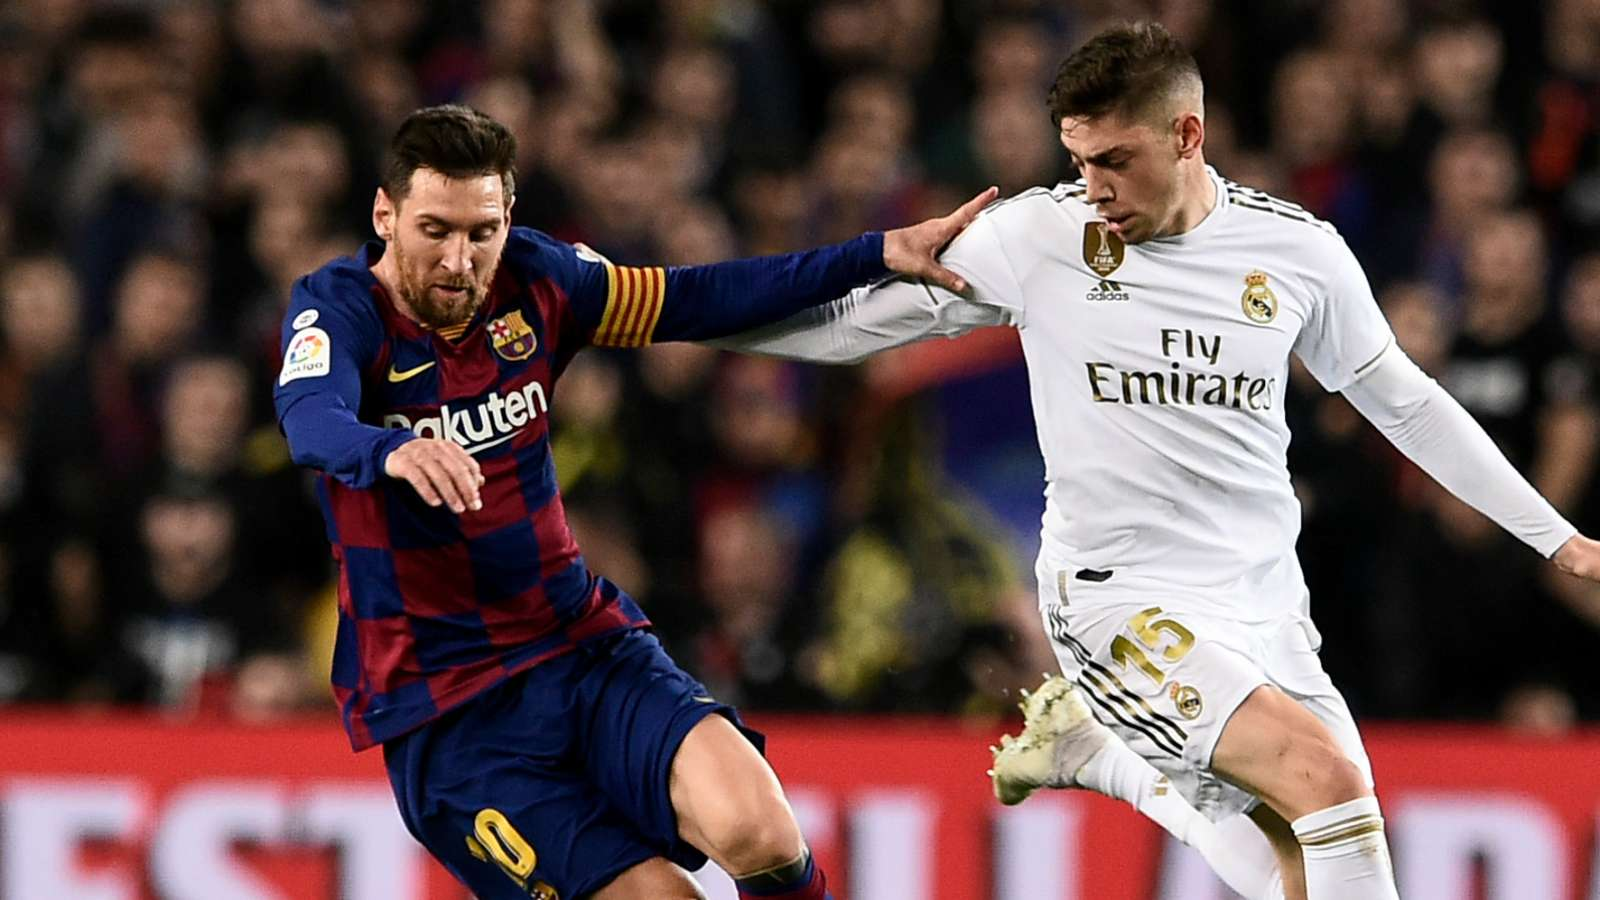 Real Madrid reject barcelona gifts and settle for a draw in the Clásico